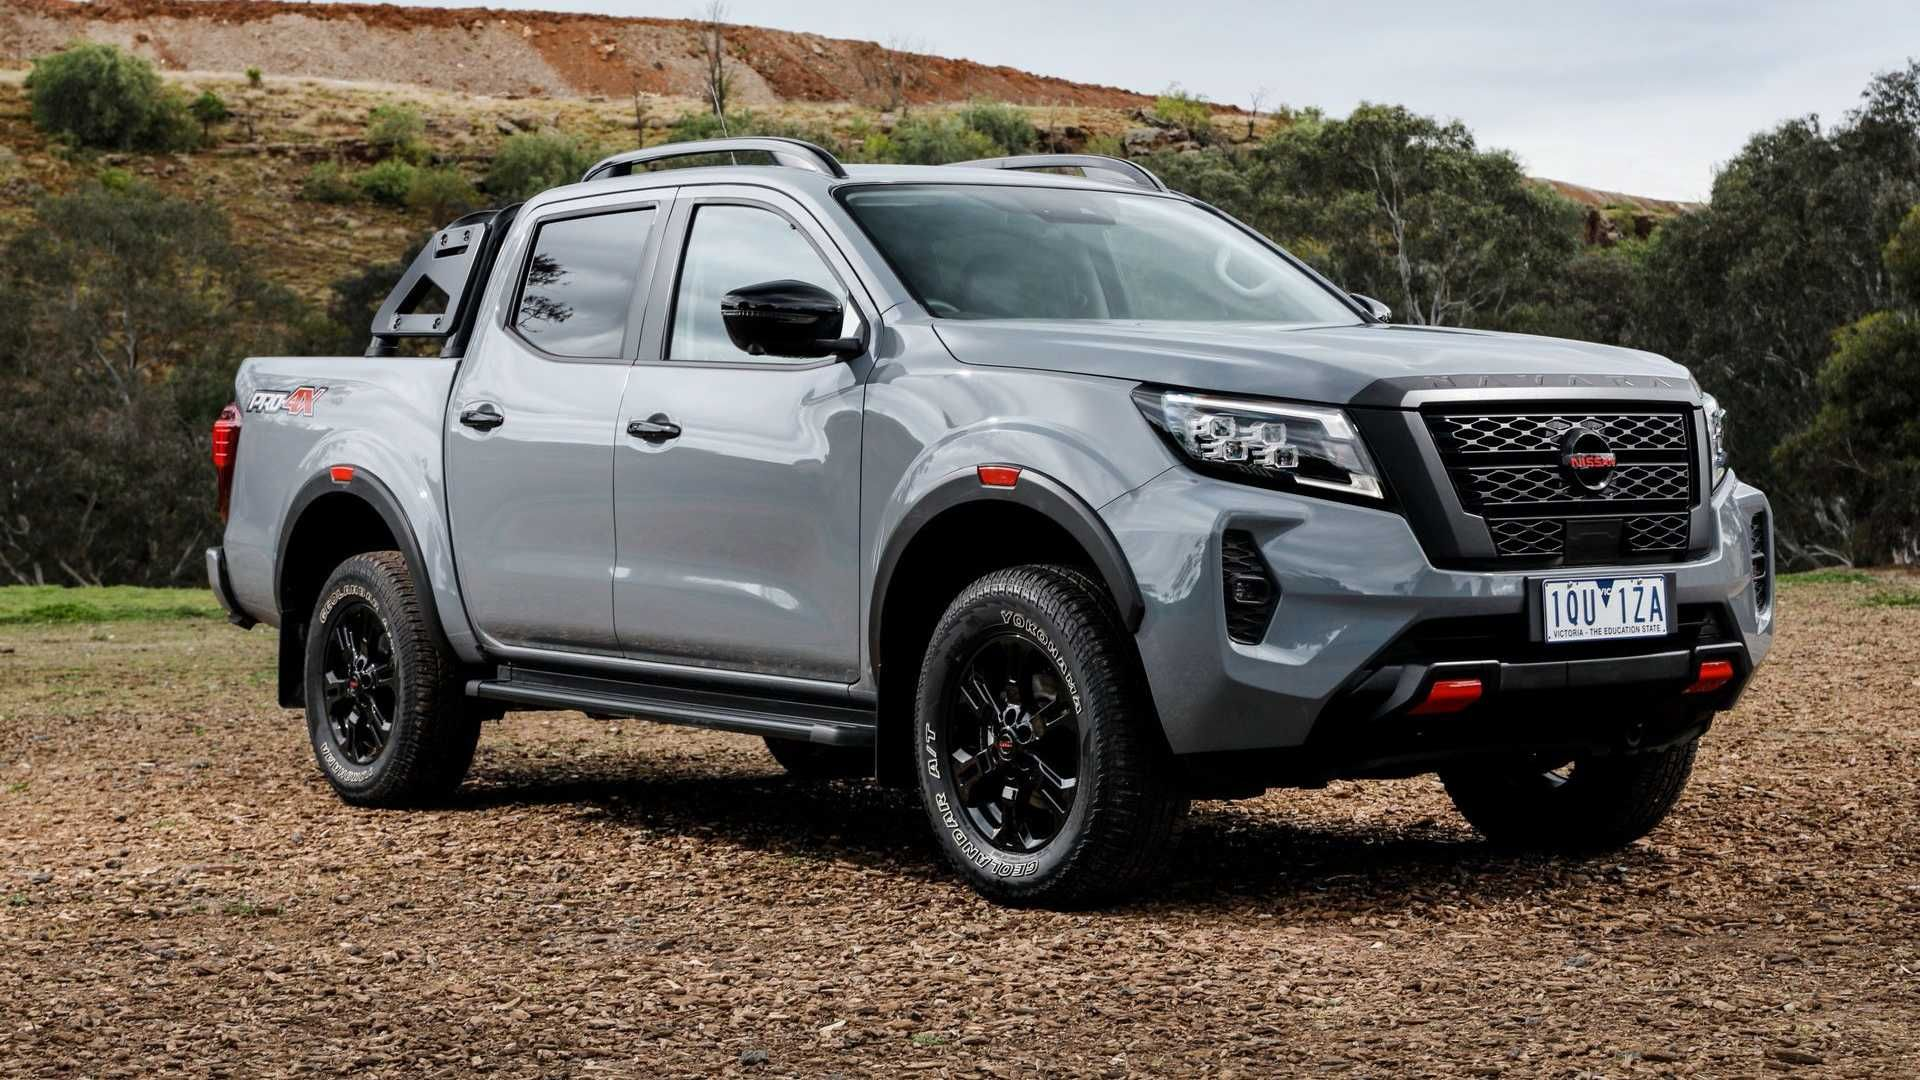 Nissan Has Given The Frontier For Latin America A Significant Update Inside And Out Along With A New High End Pro 4x Trim Nissan Navara Nissan Frontier Nissan